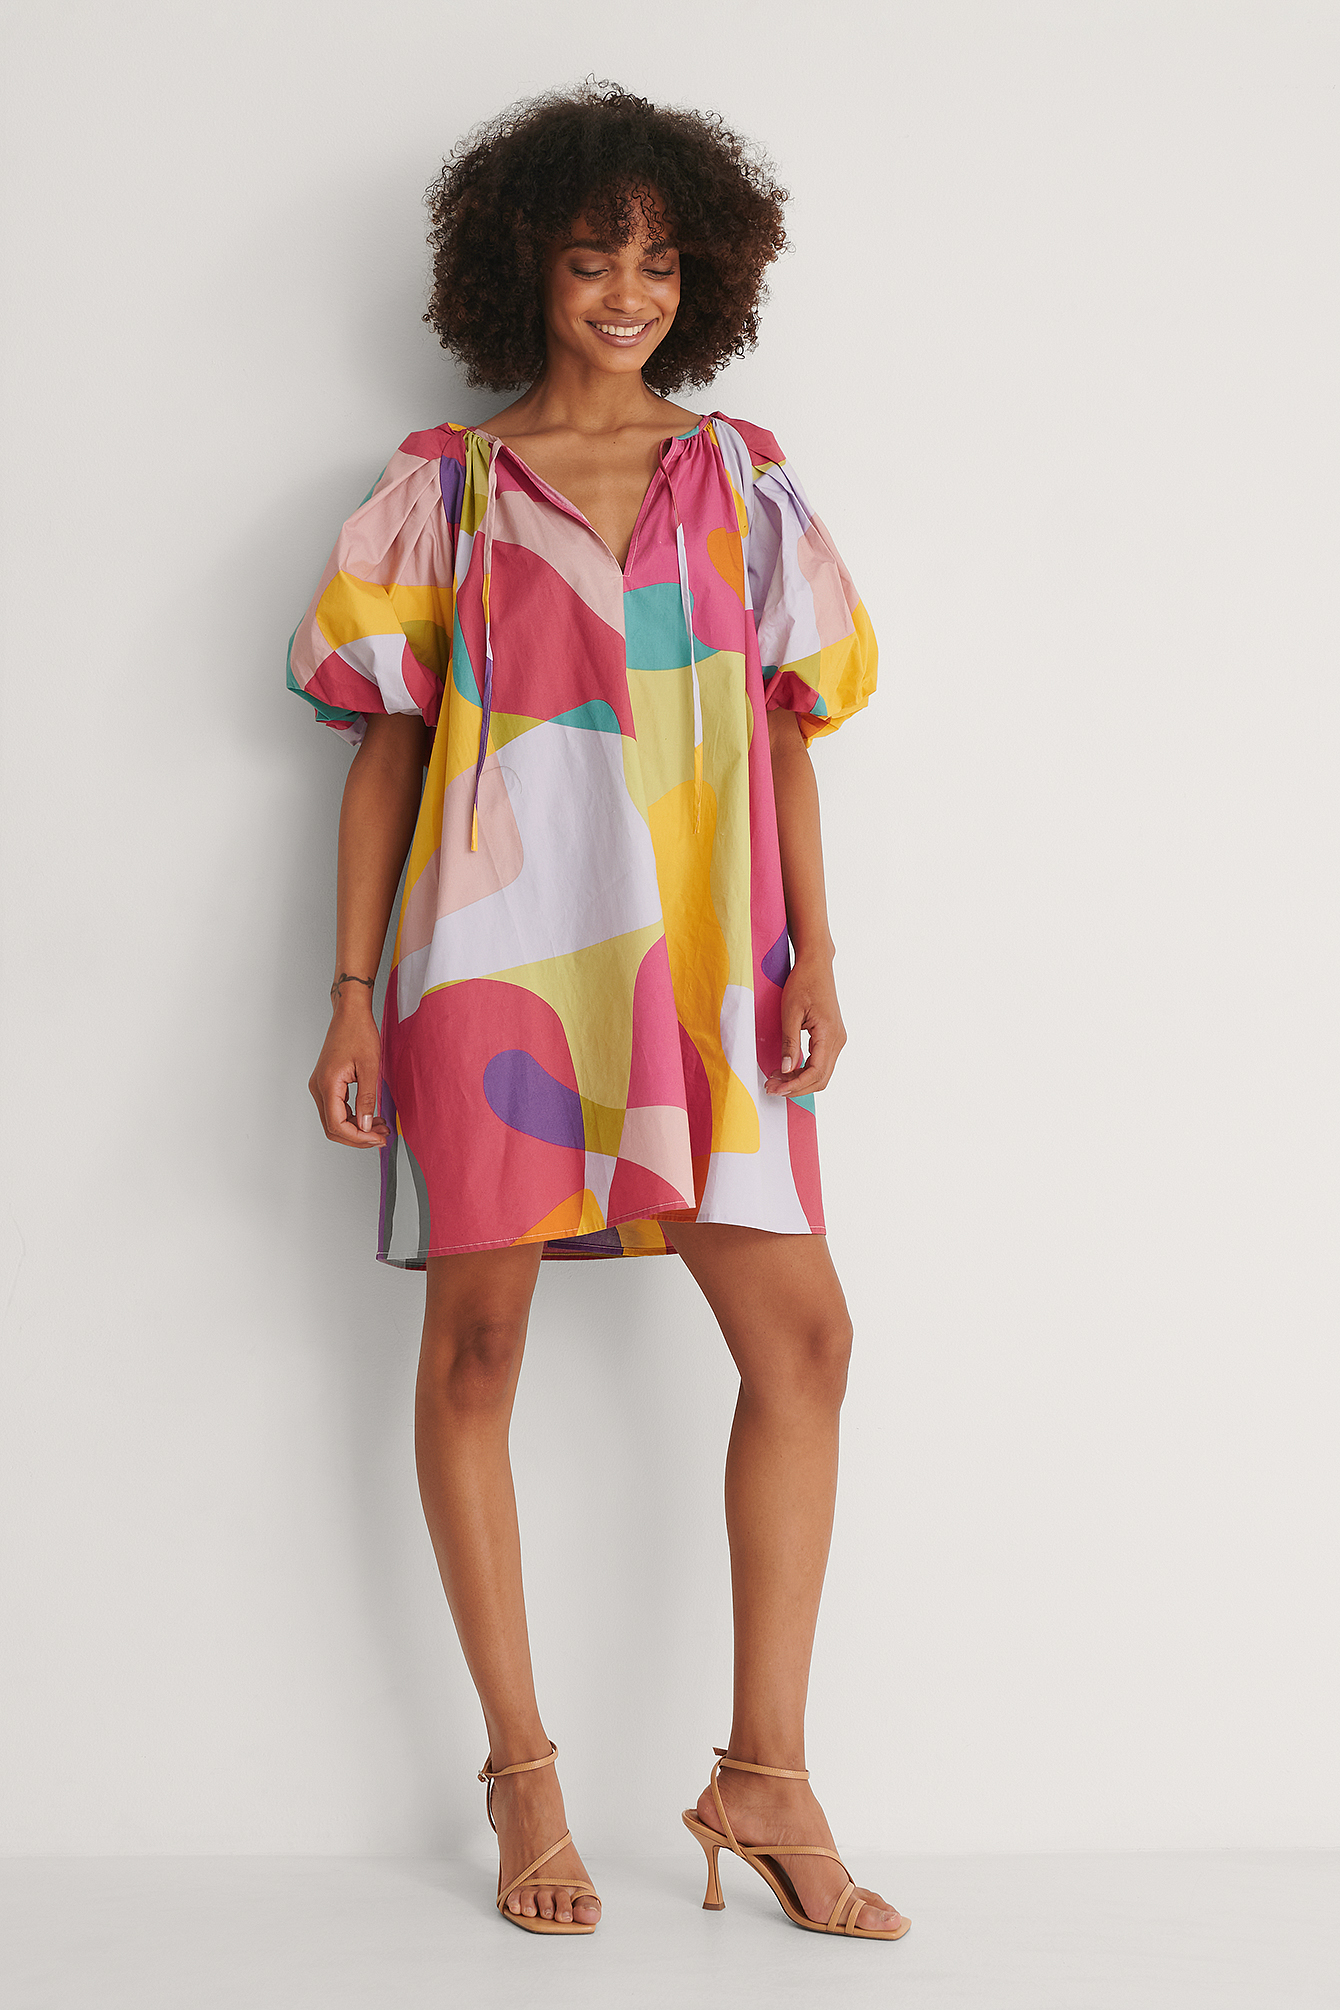 Geometric Bright Organic Maxi Volume Mini Cotton Dress